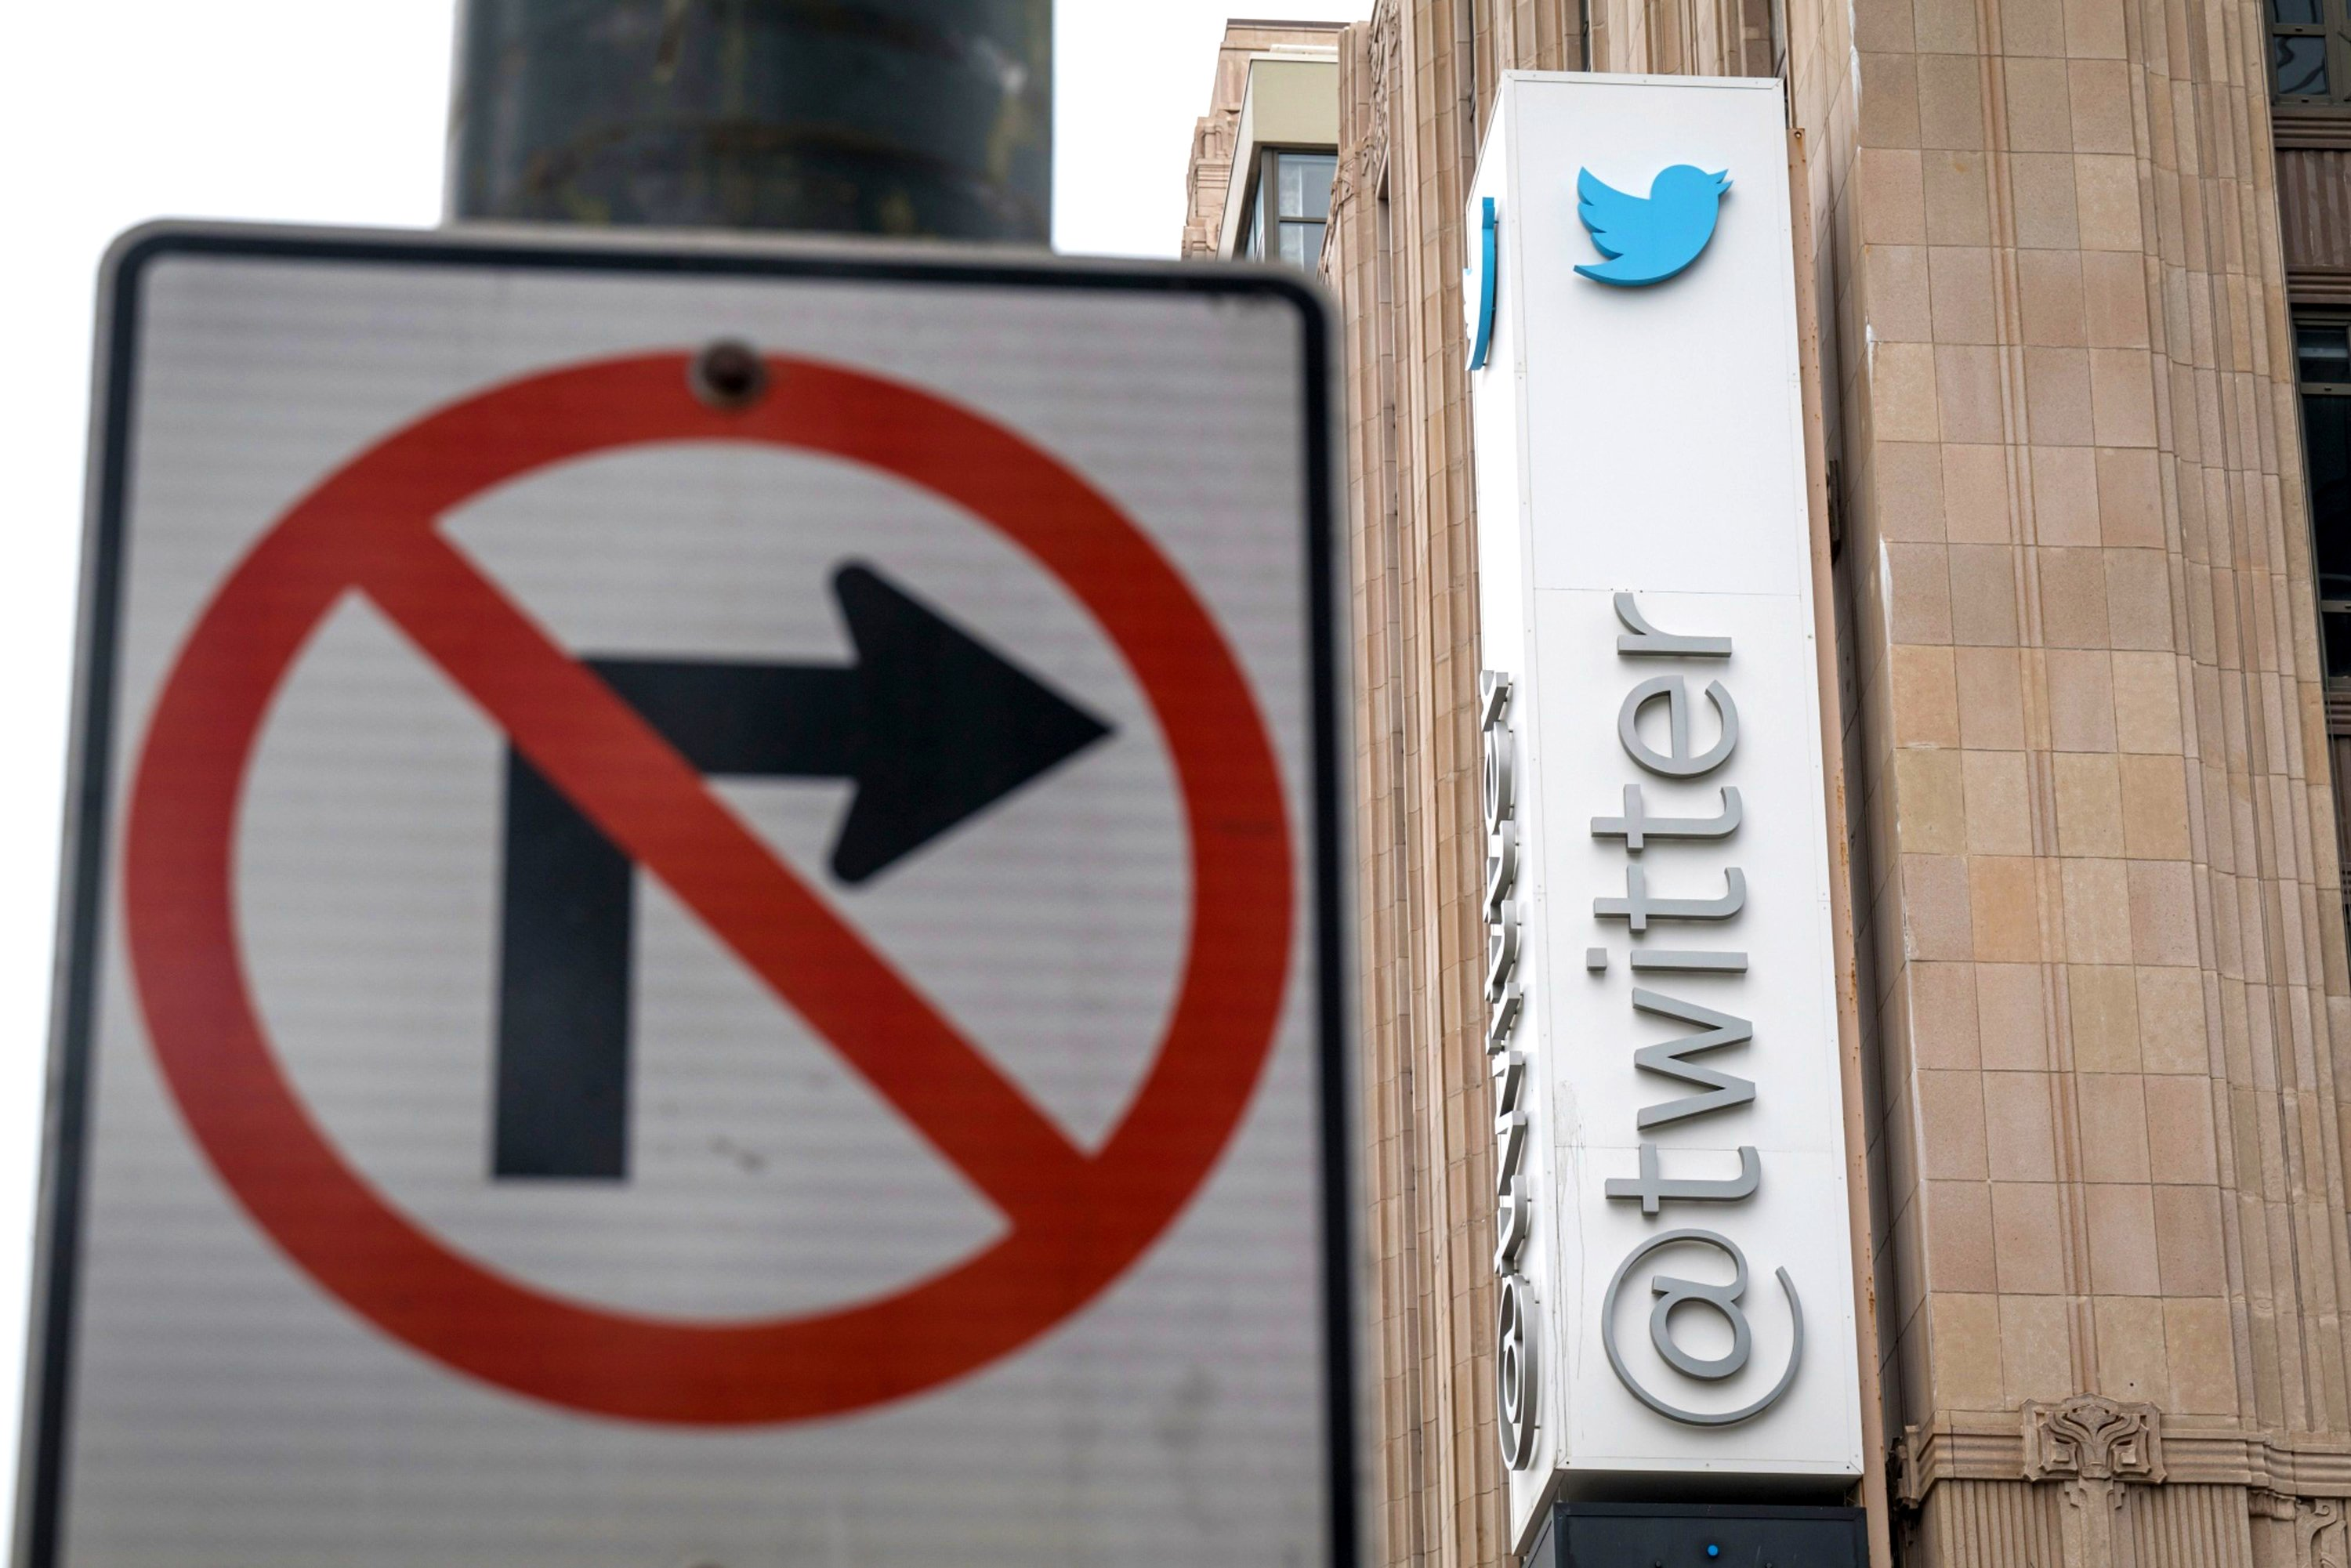 Twitter places limits to slow the spread of misleading content